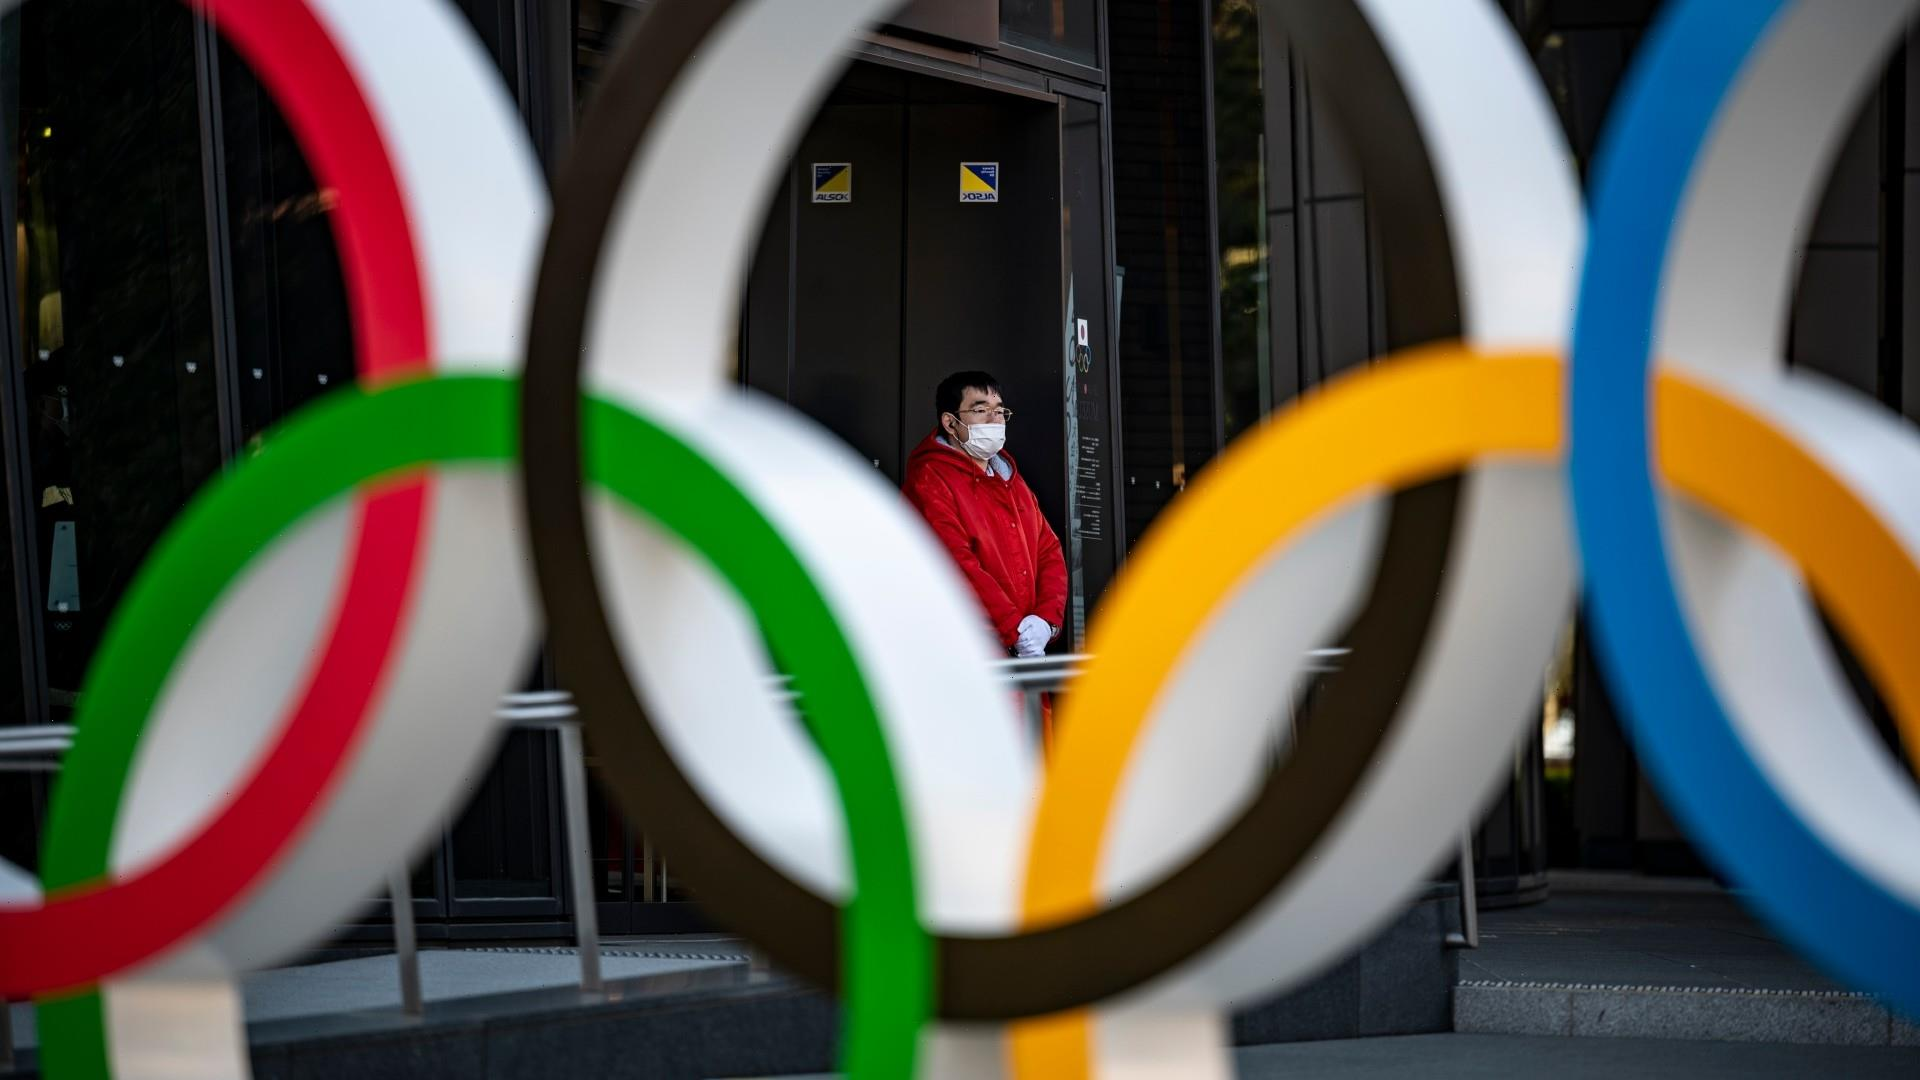 Doctors request cancellation of 2021 Olympics as COVID-19 spikes in Tokyo